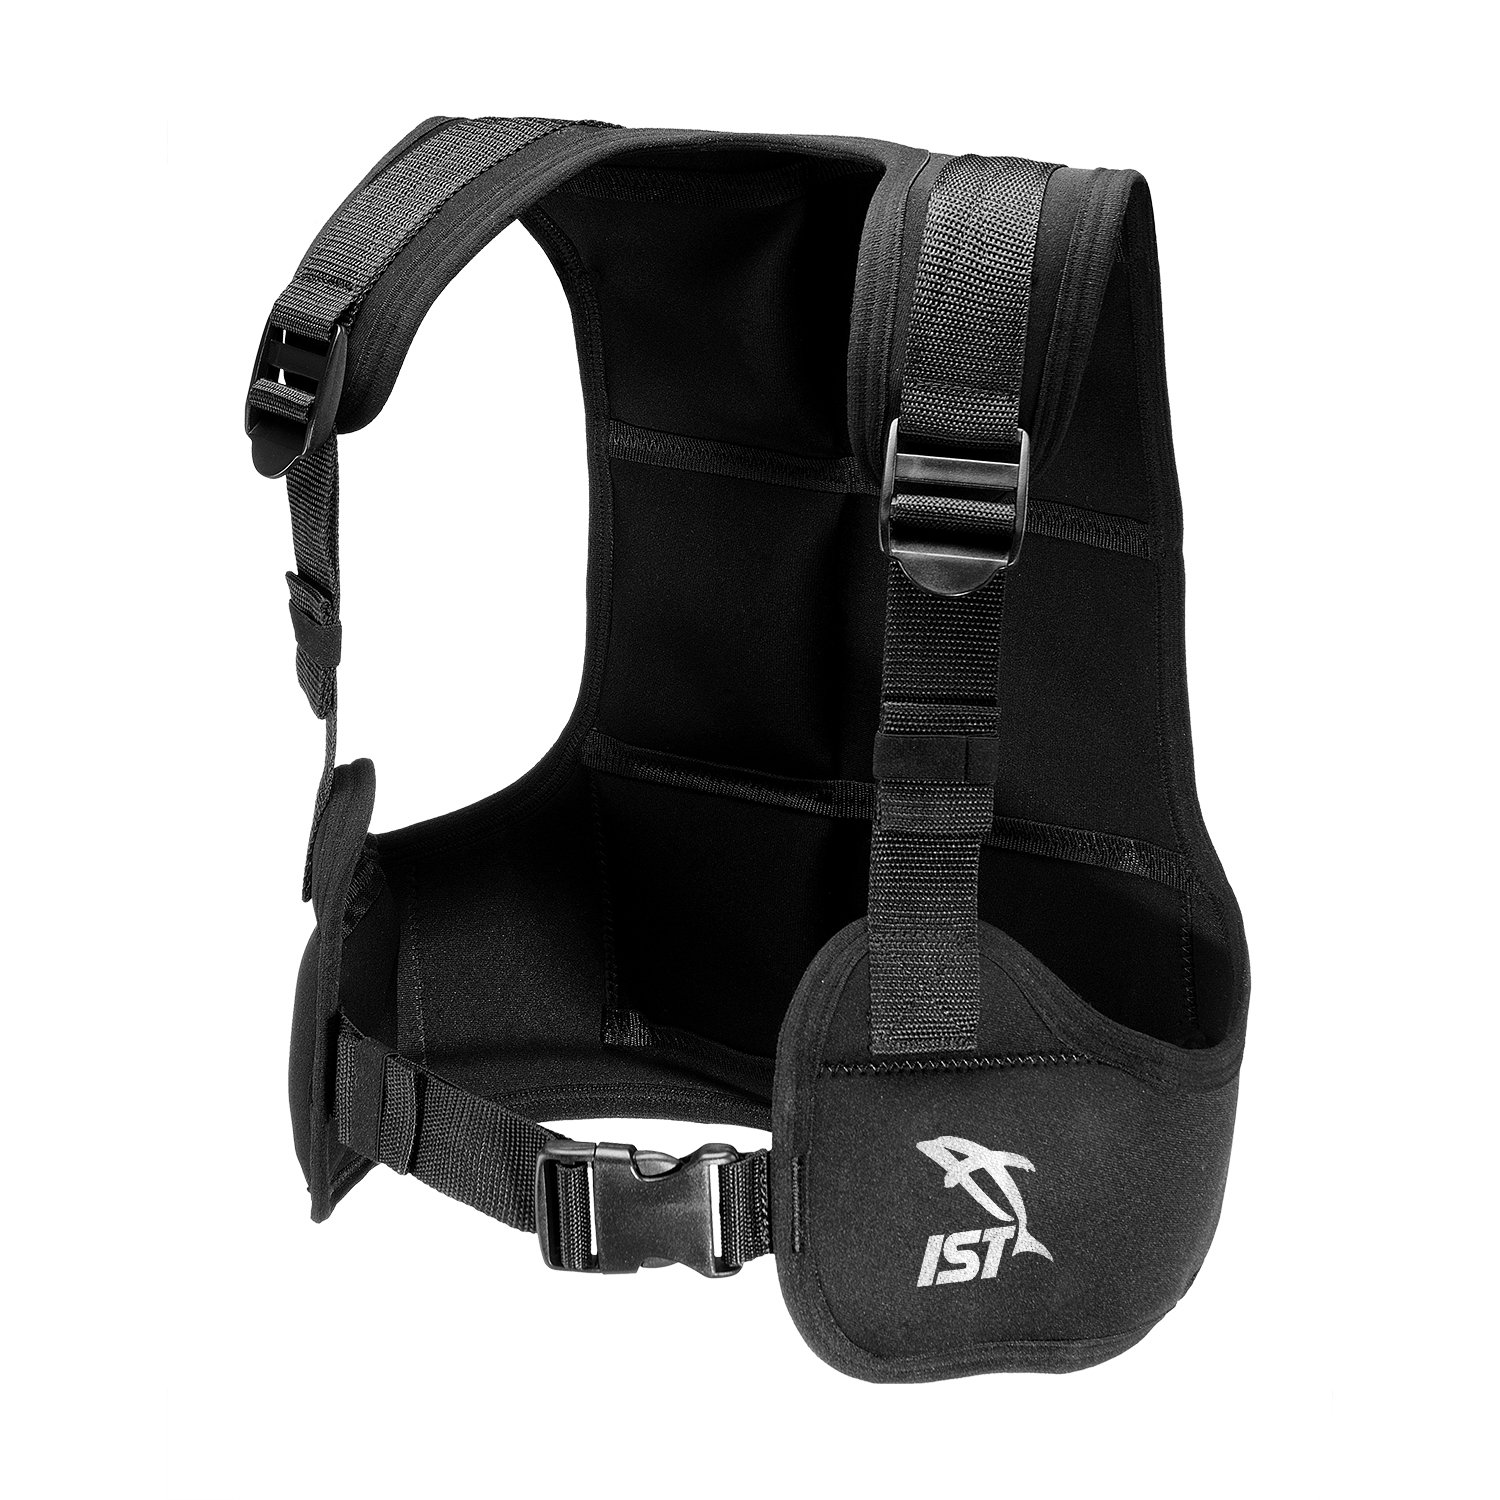 IST VSA0240 Free Diving/Apnea Weight Vest, Holds Up to 35lbs. (Medium)